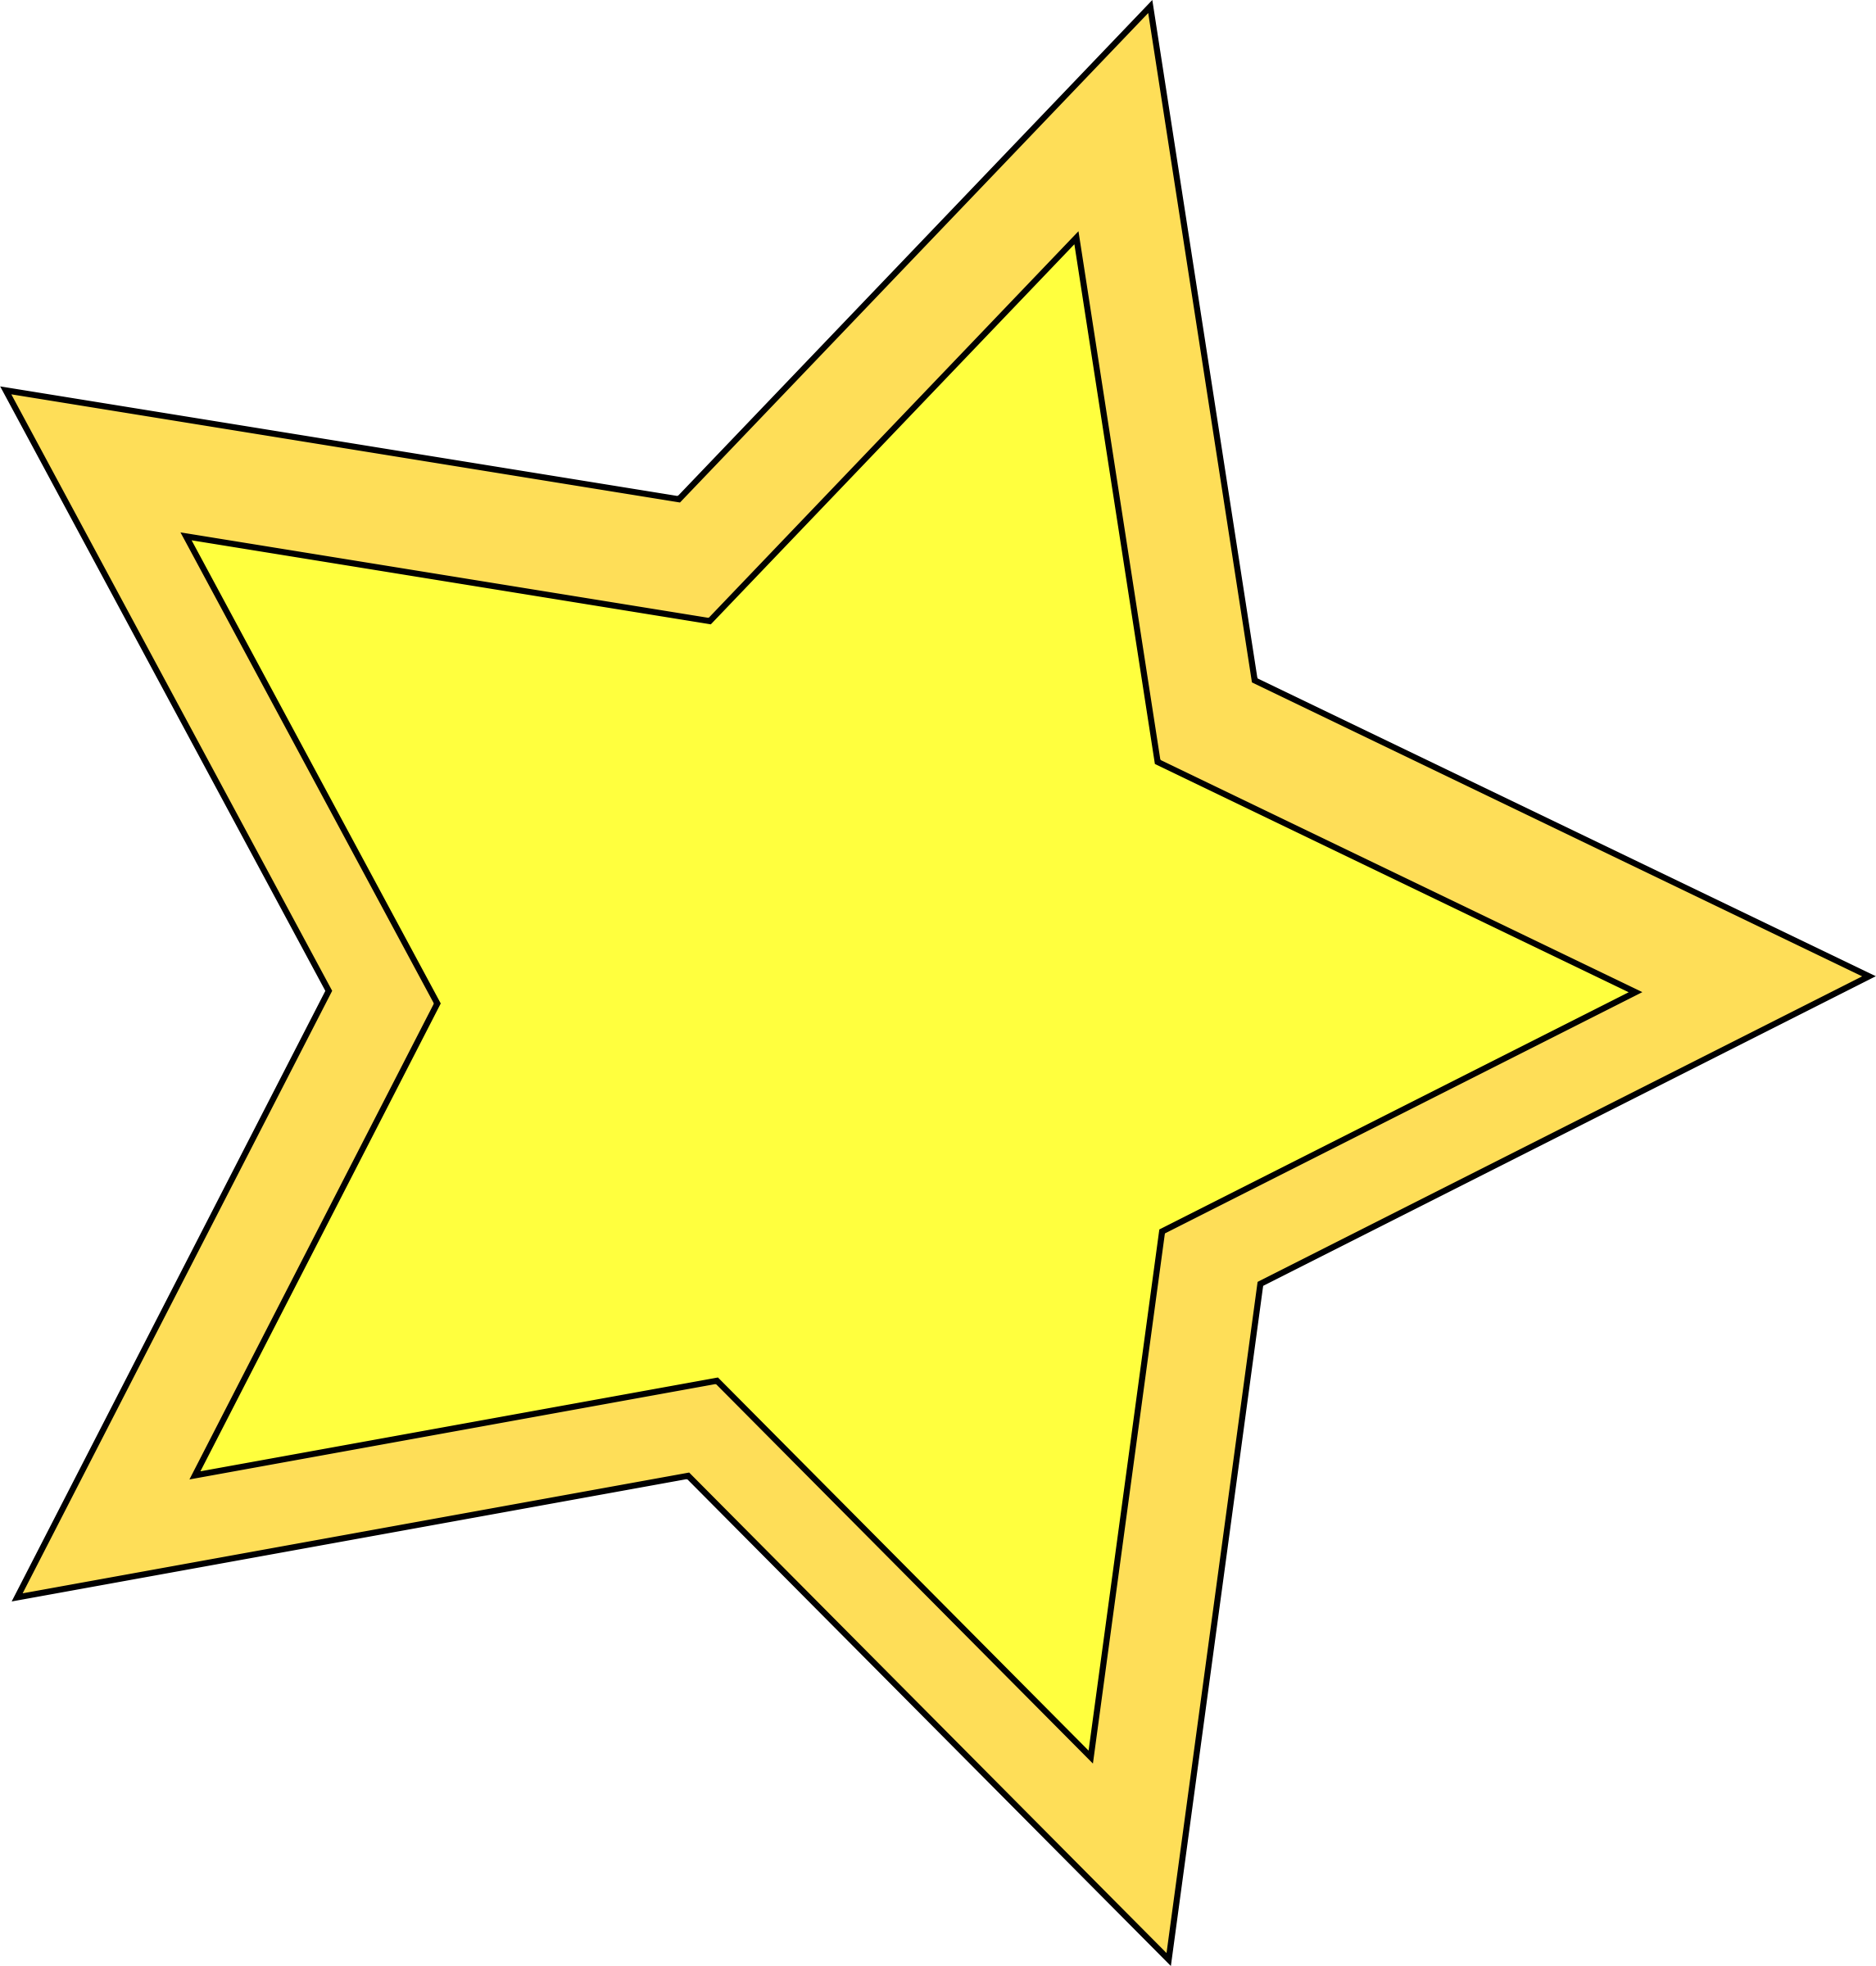 Yellow clipart star picture transparent download Clipart - double star picture transparent download